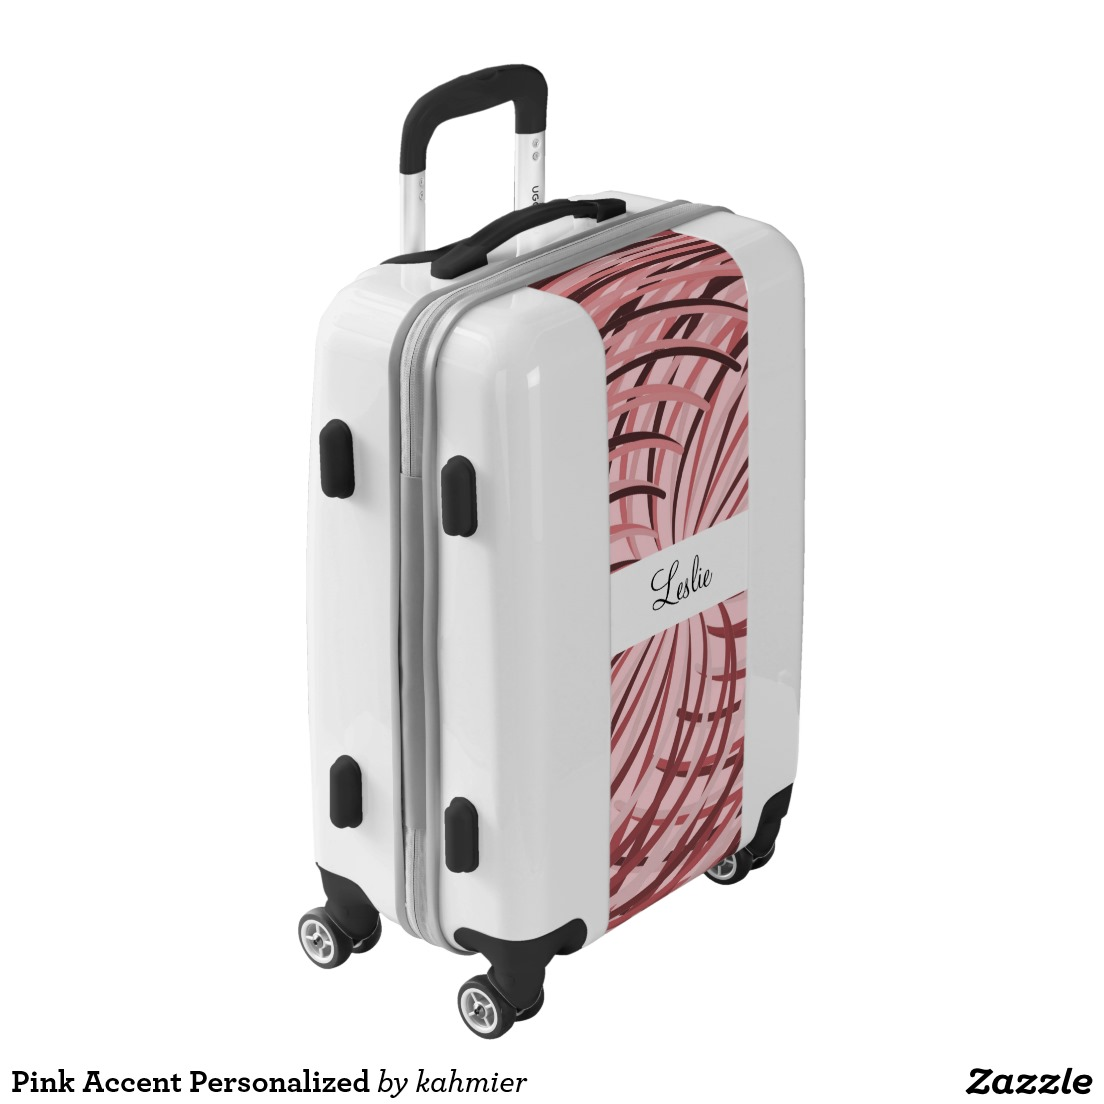 Pink Accent Personalized Luggage